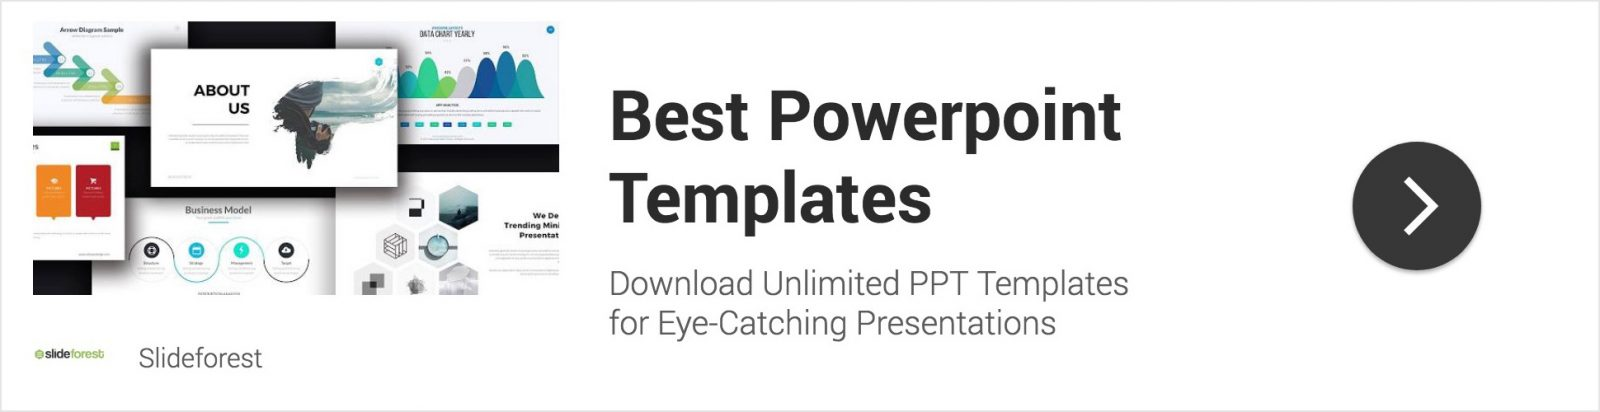 25 free business powerpoint templates for presentations business powerpoint templates wajeb Choice Image